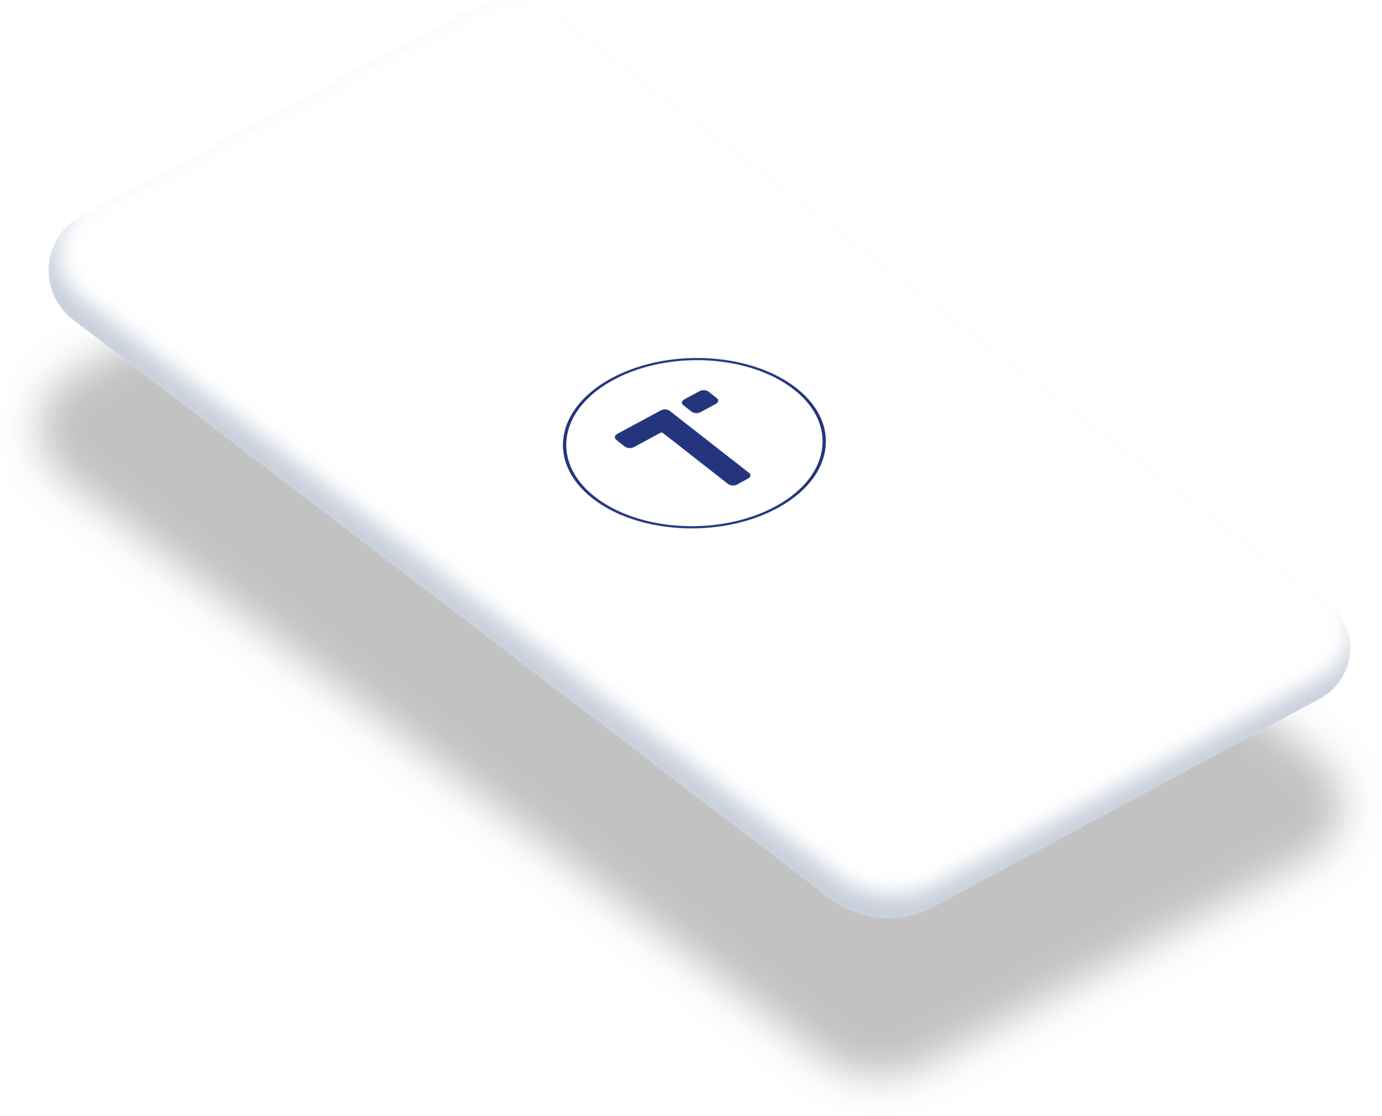 Toolbox logo on mobile phone